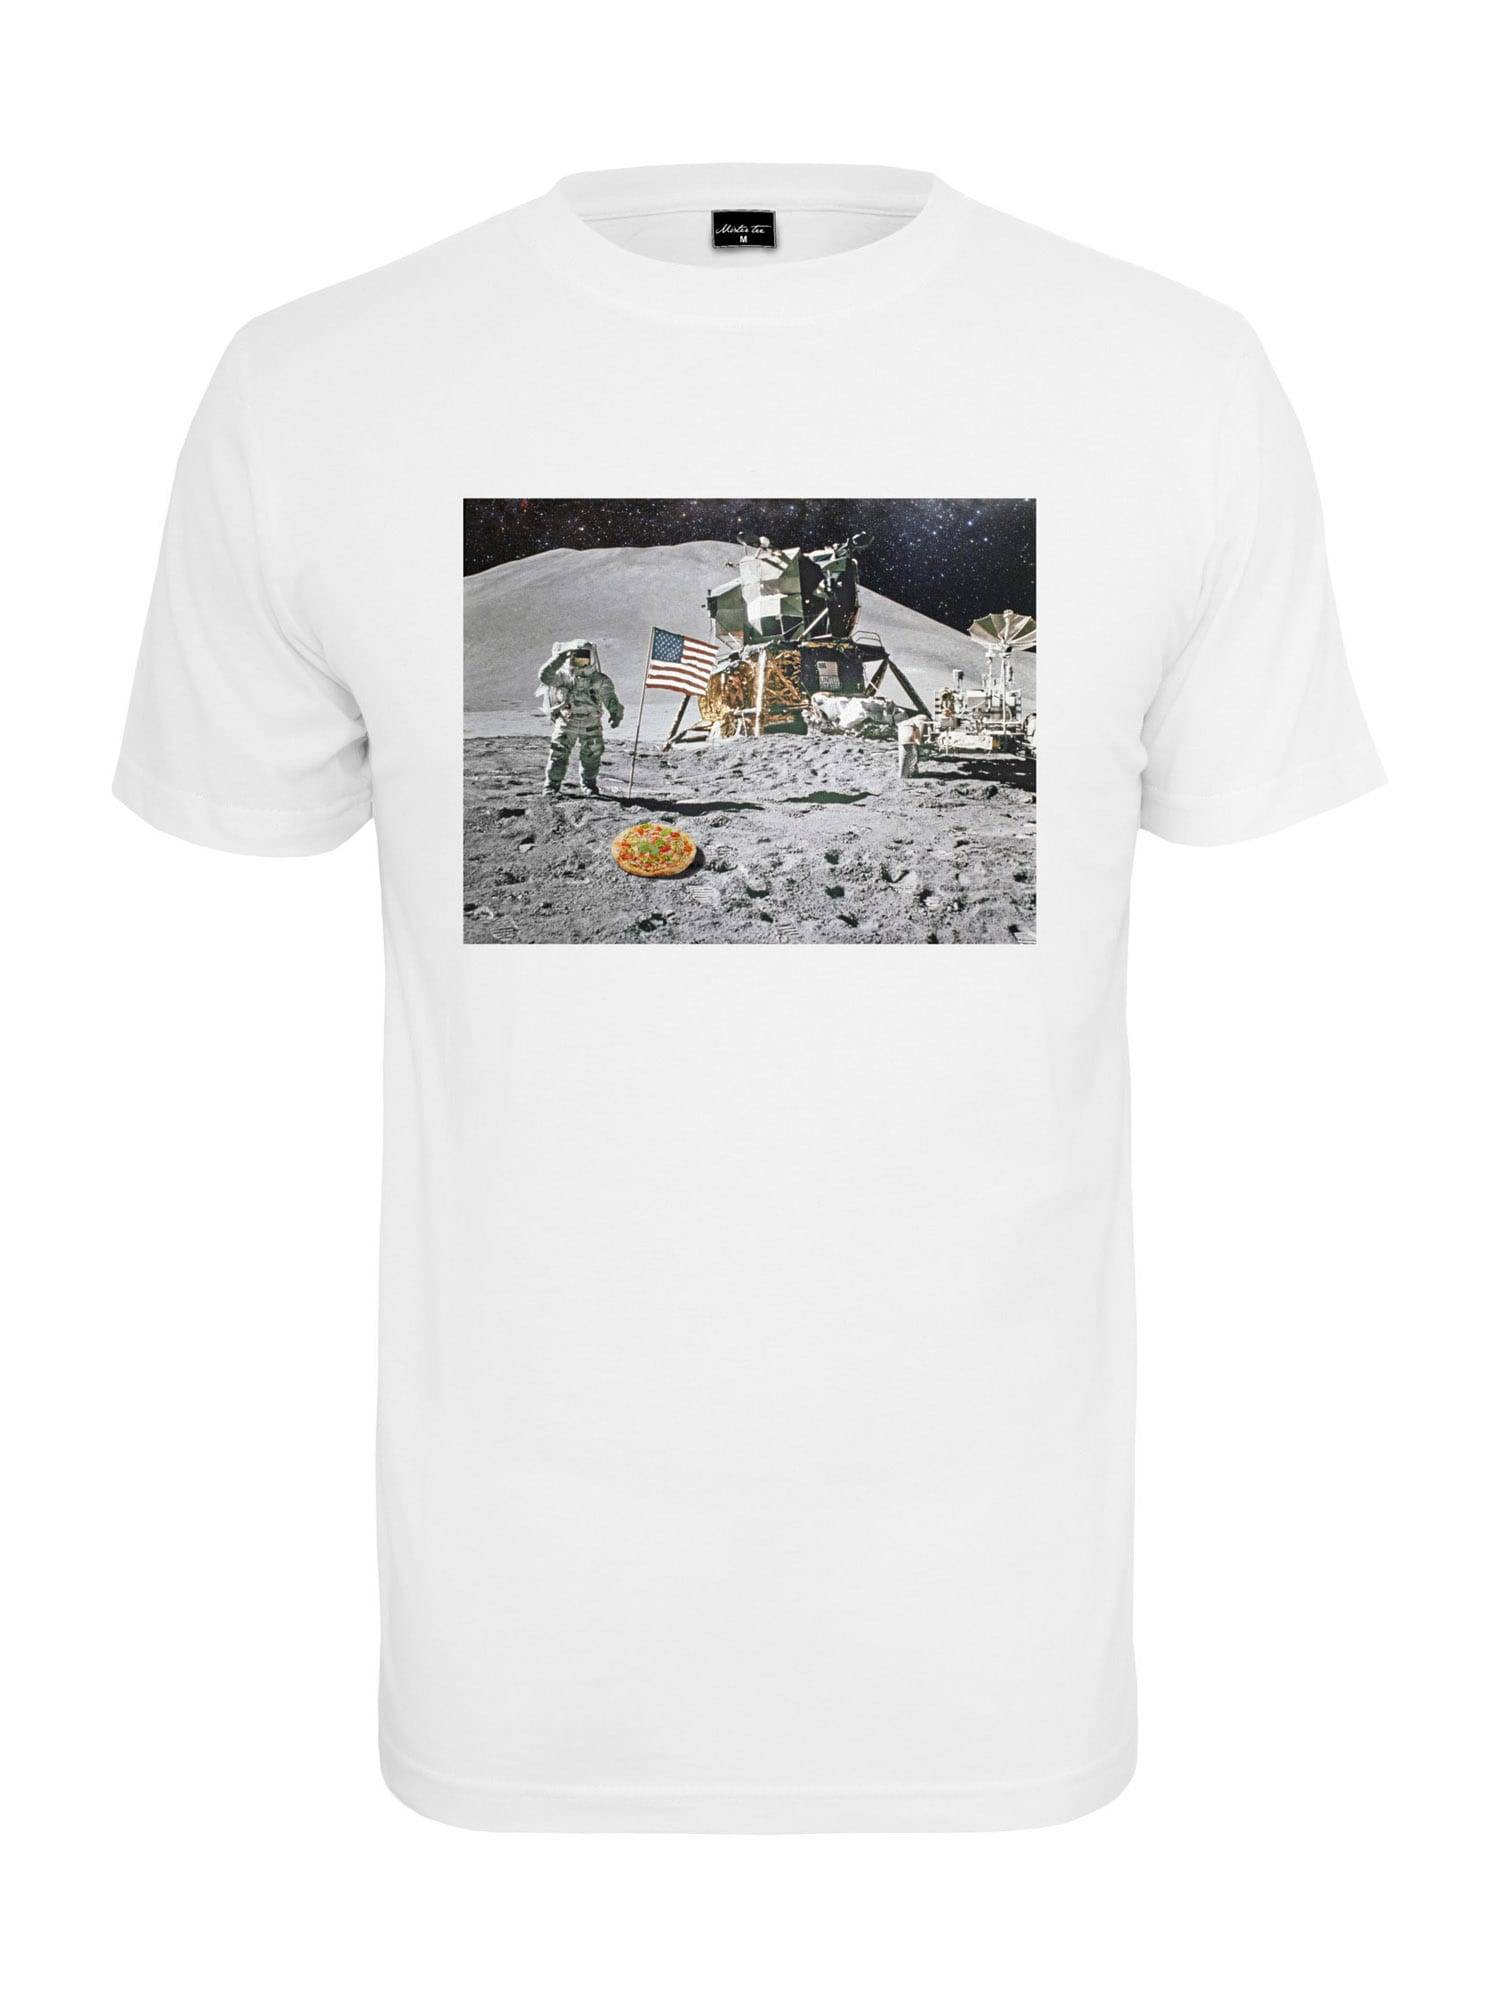 Tee T-Shirt 'Pizza Moon'  - Blanc - Taille: XS - male